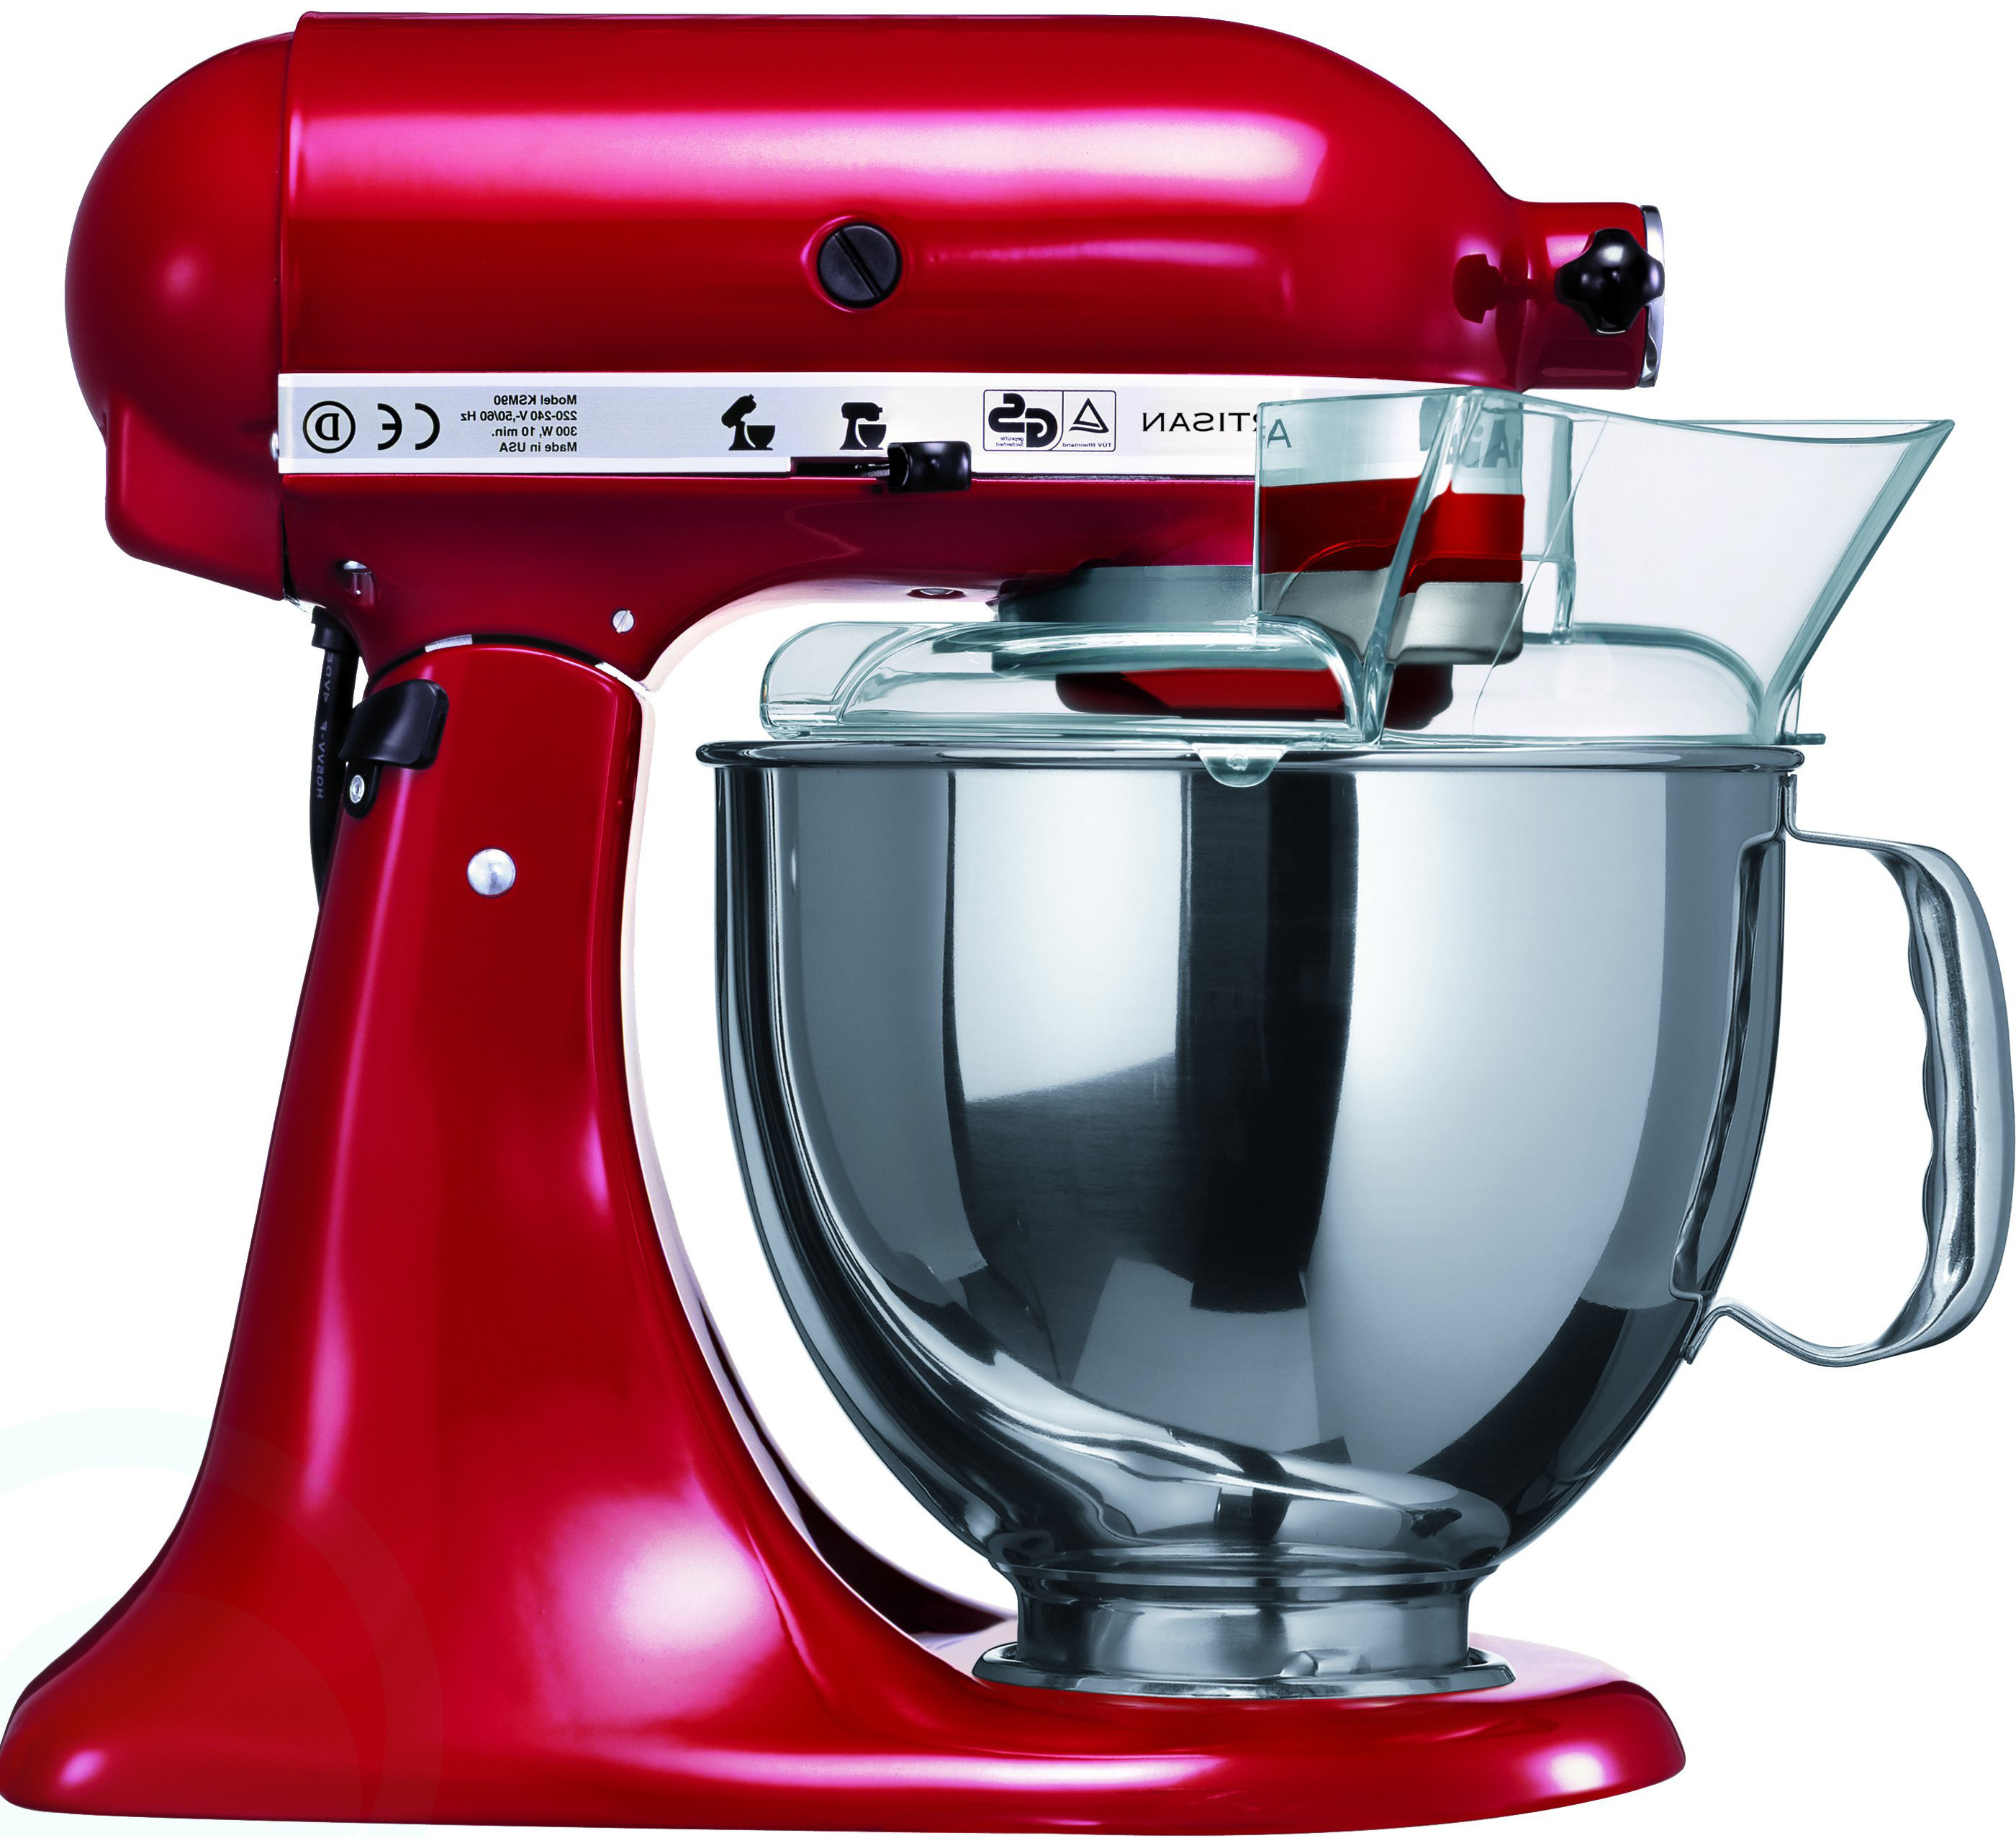 Kitchenaid 5ksm7581afp Pro Line Bowl Lift Stand Mixer Appliances